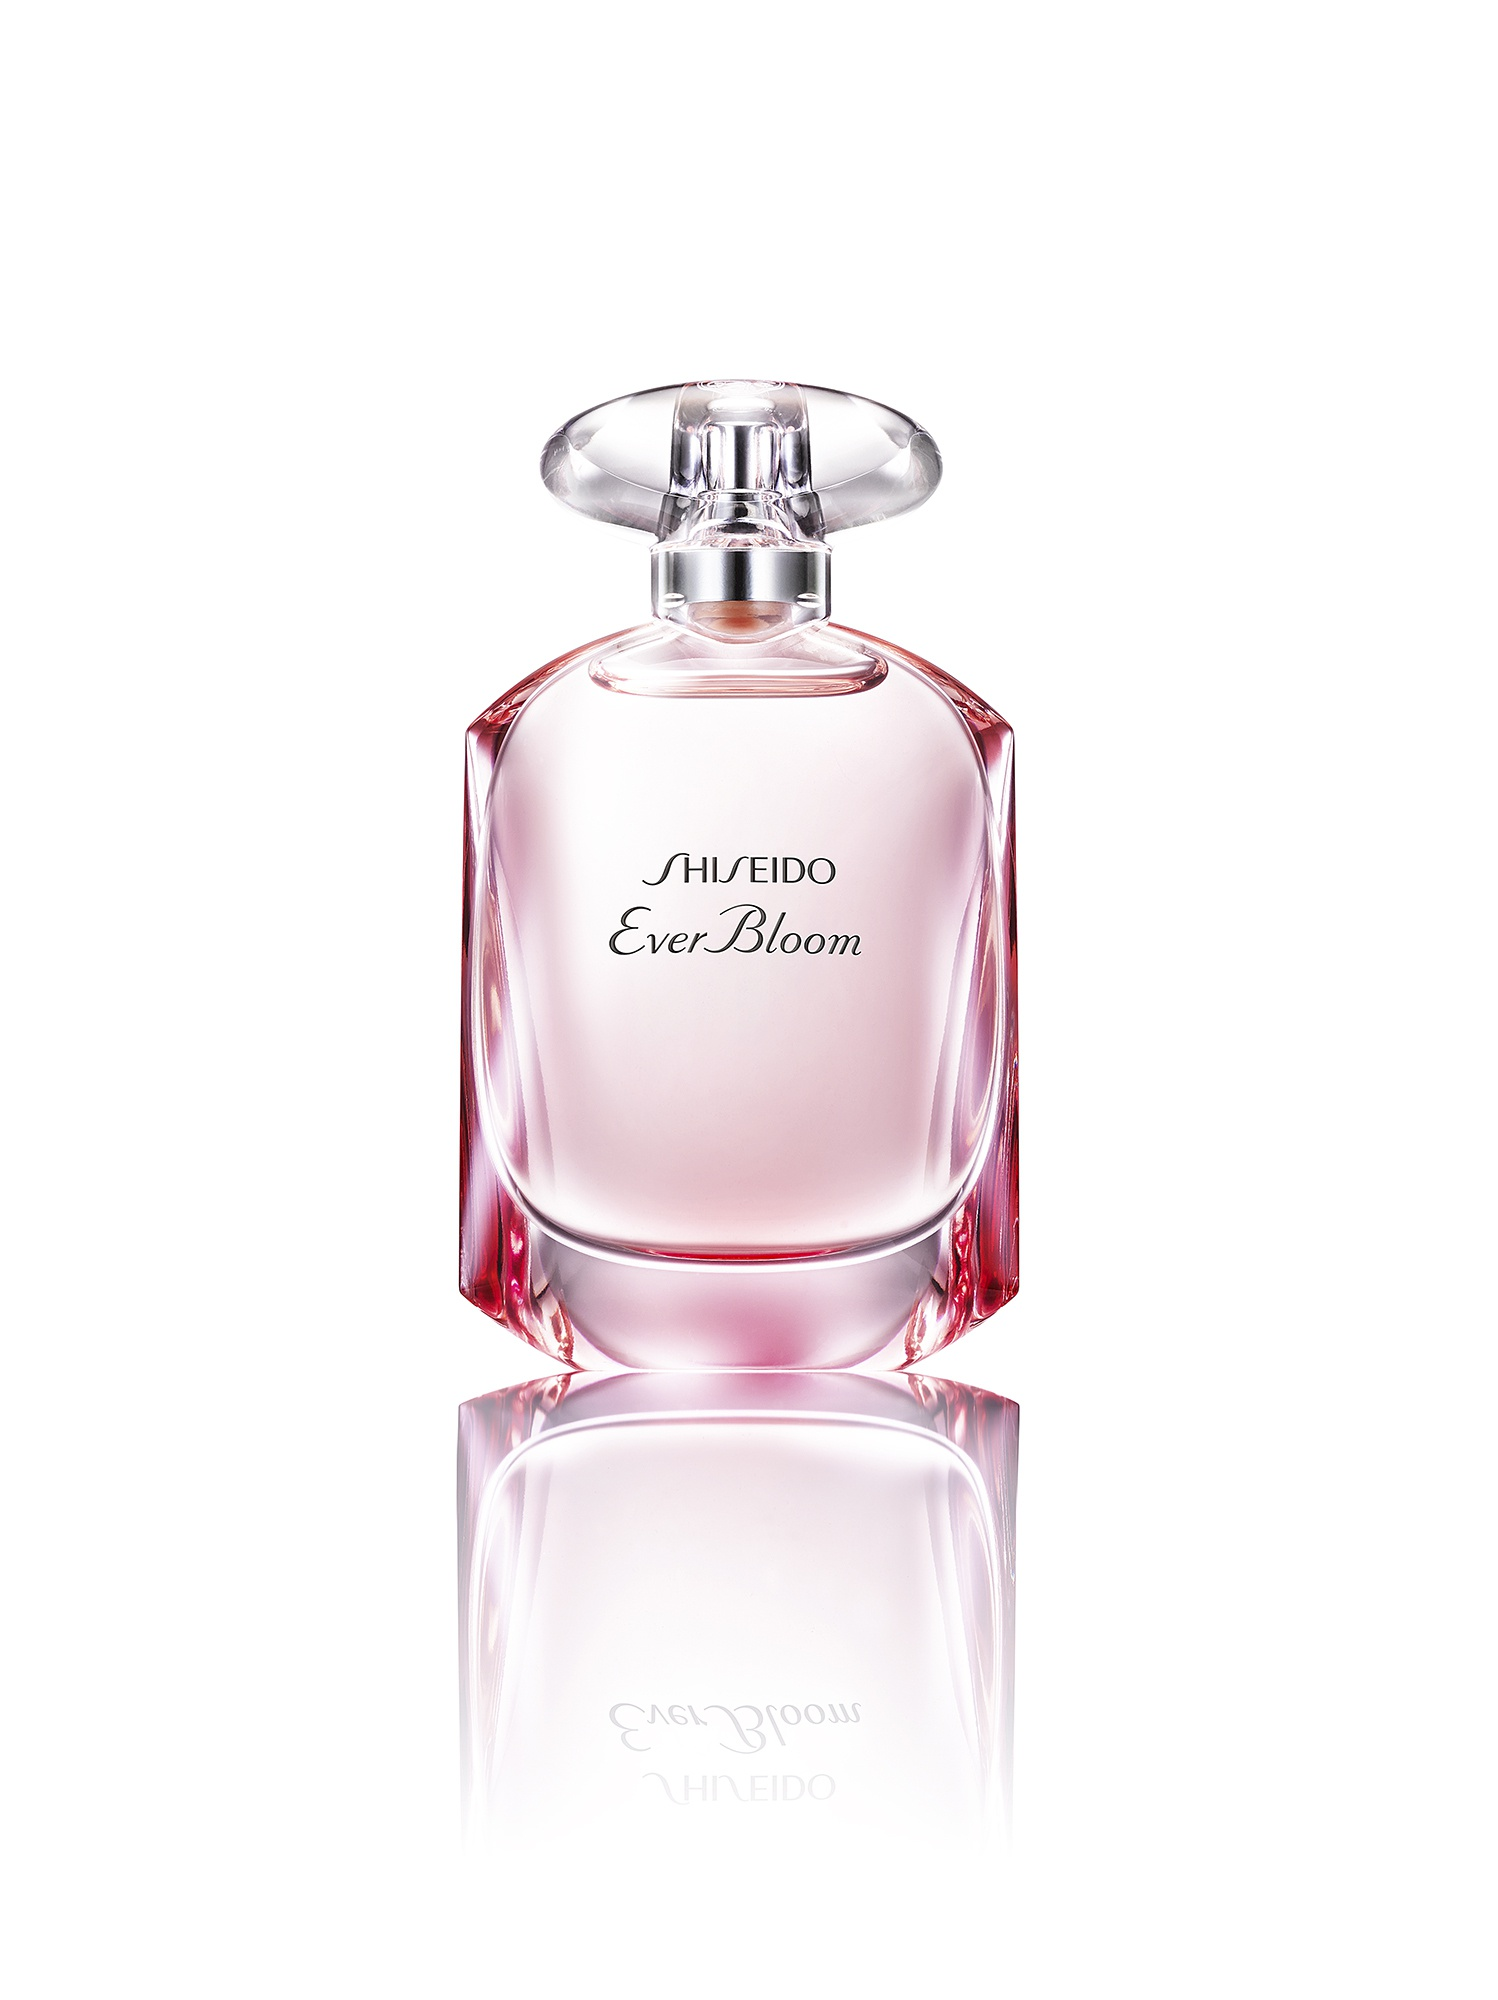 Shiseido ever bloom eau de parfum 30ml vaporizador